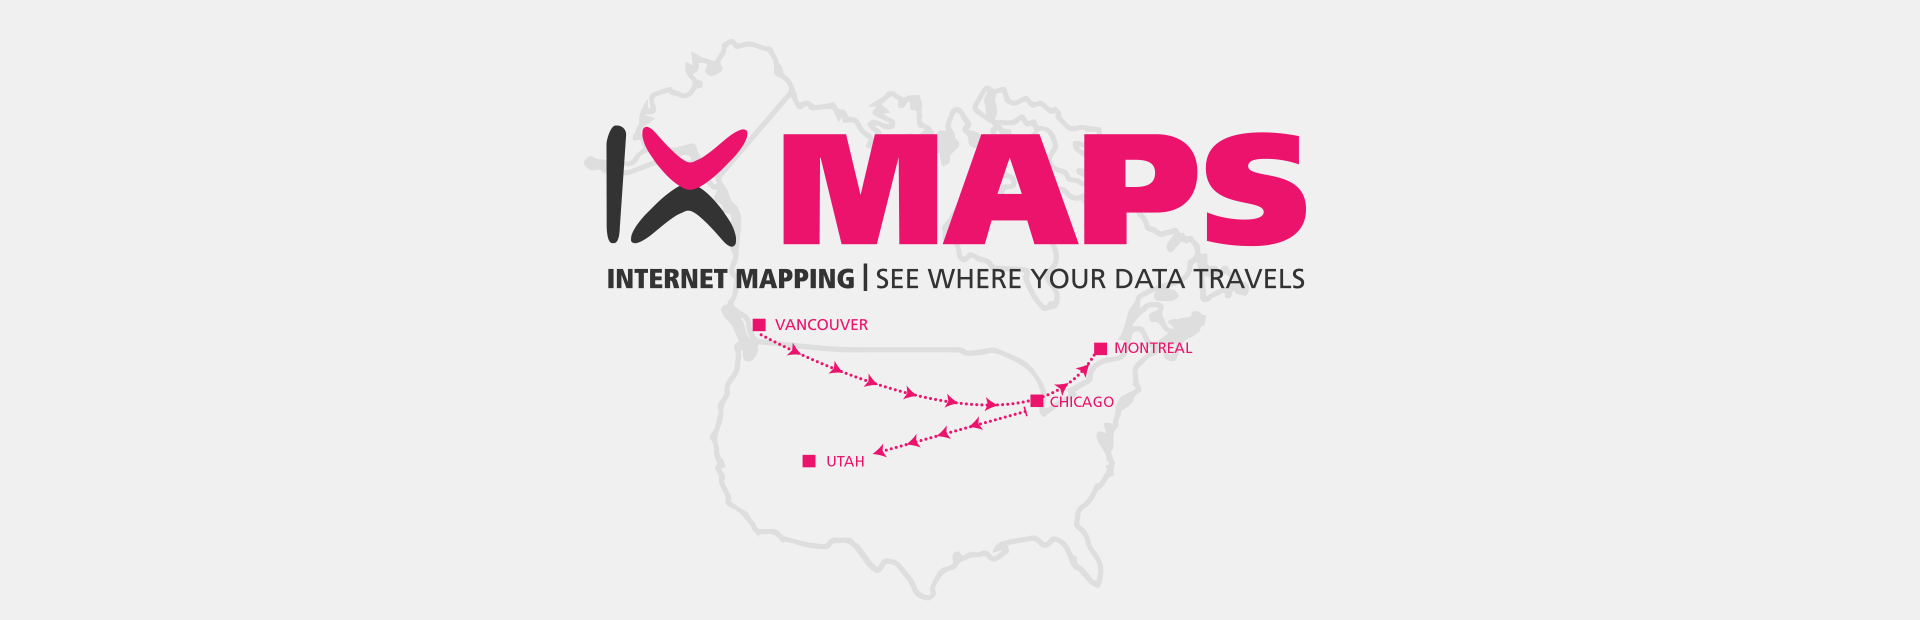 IXmaps: See where your data travels